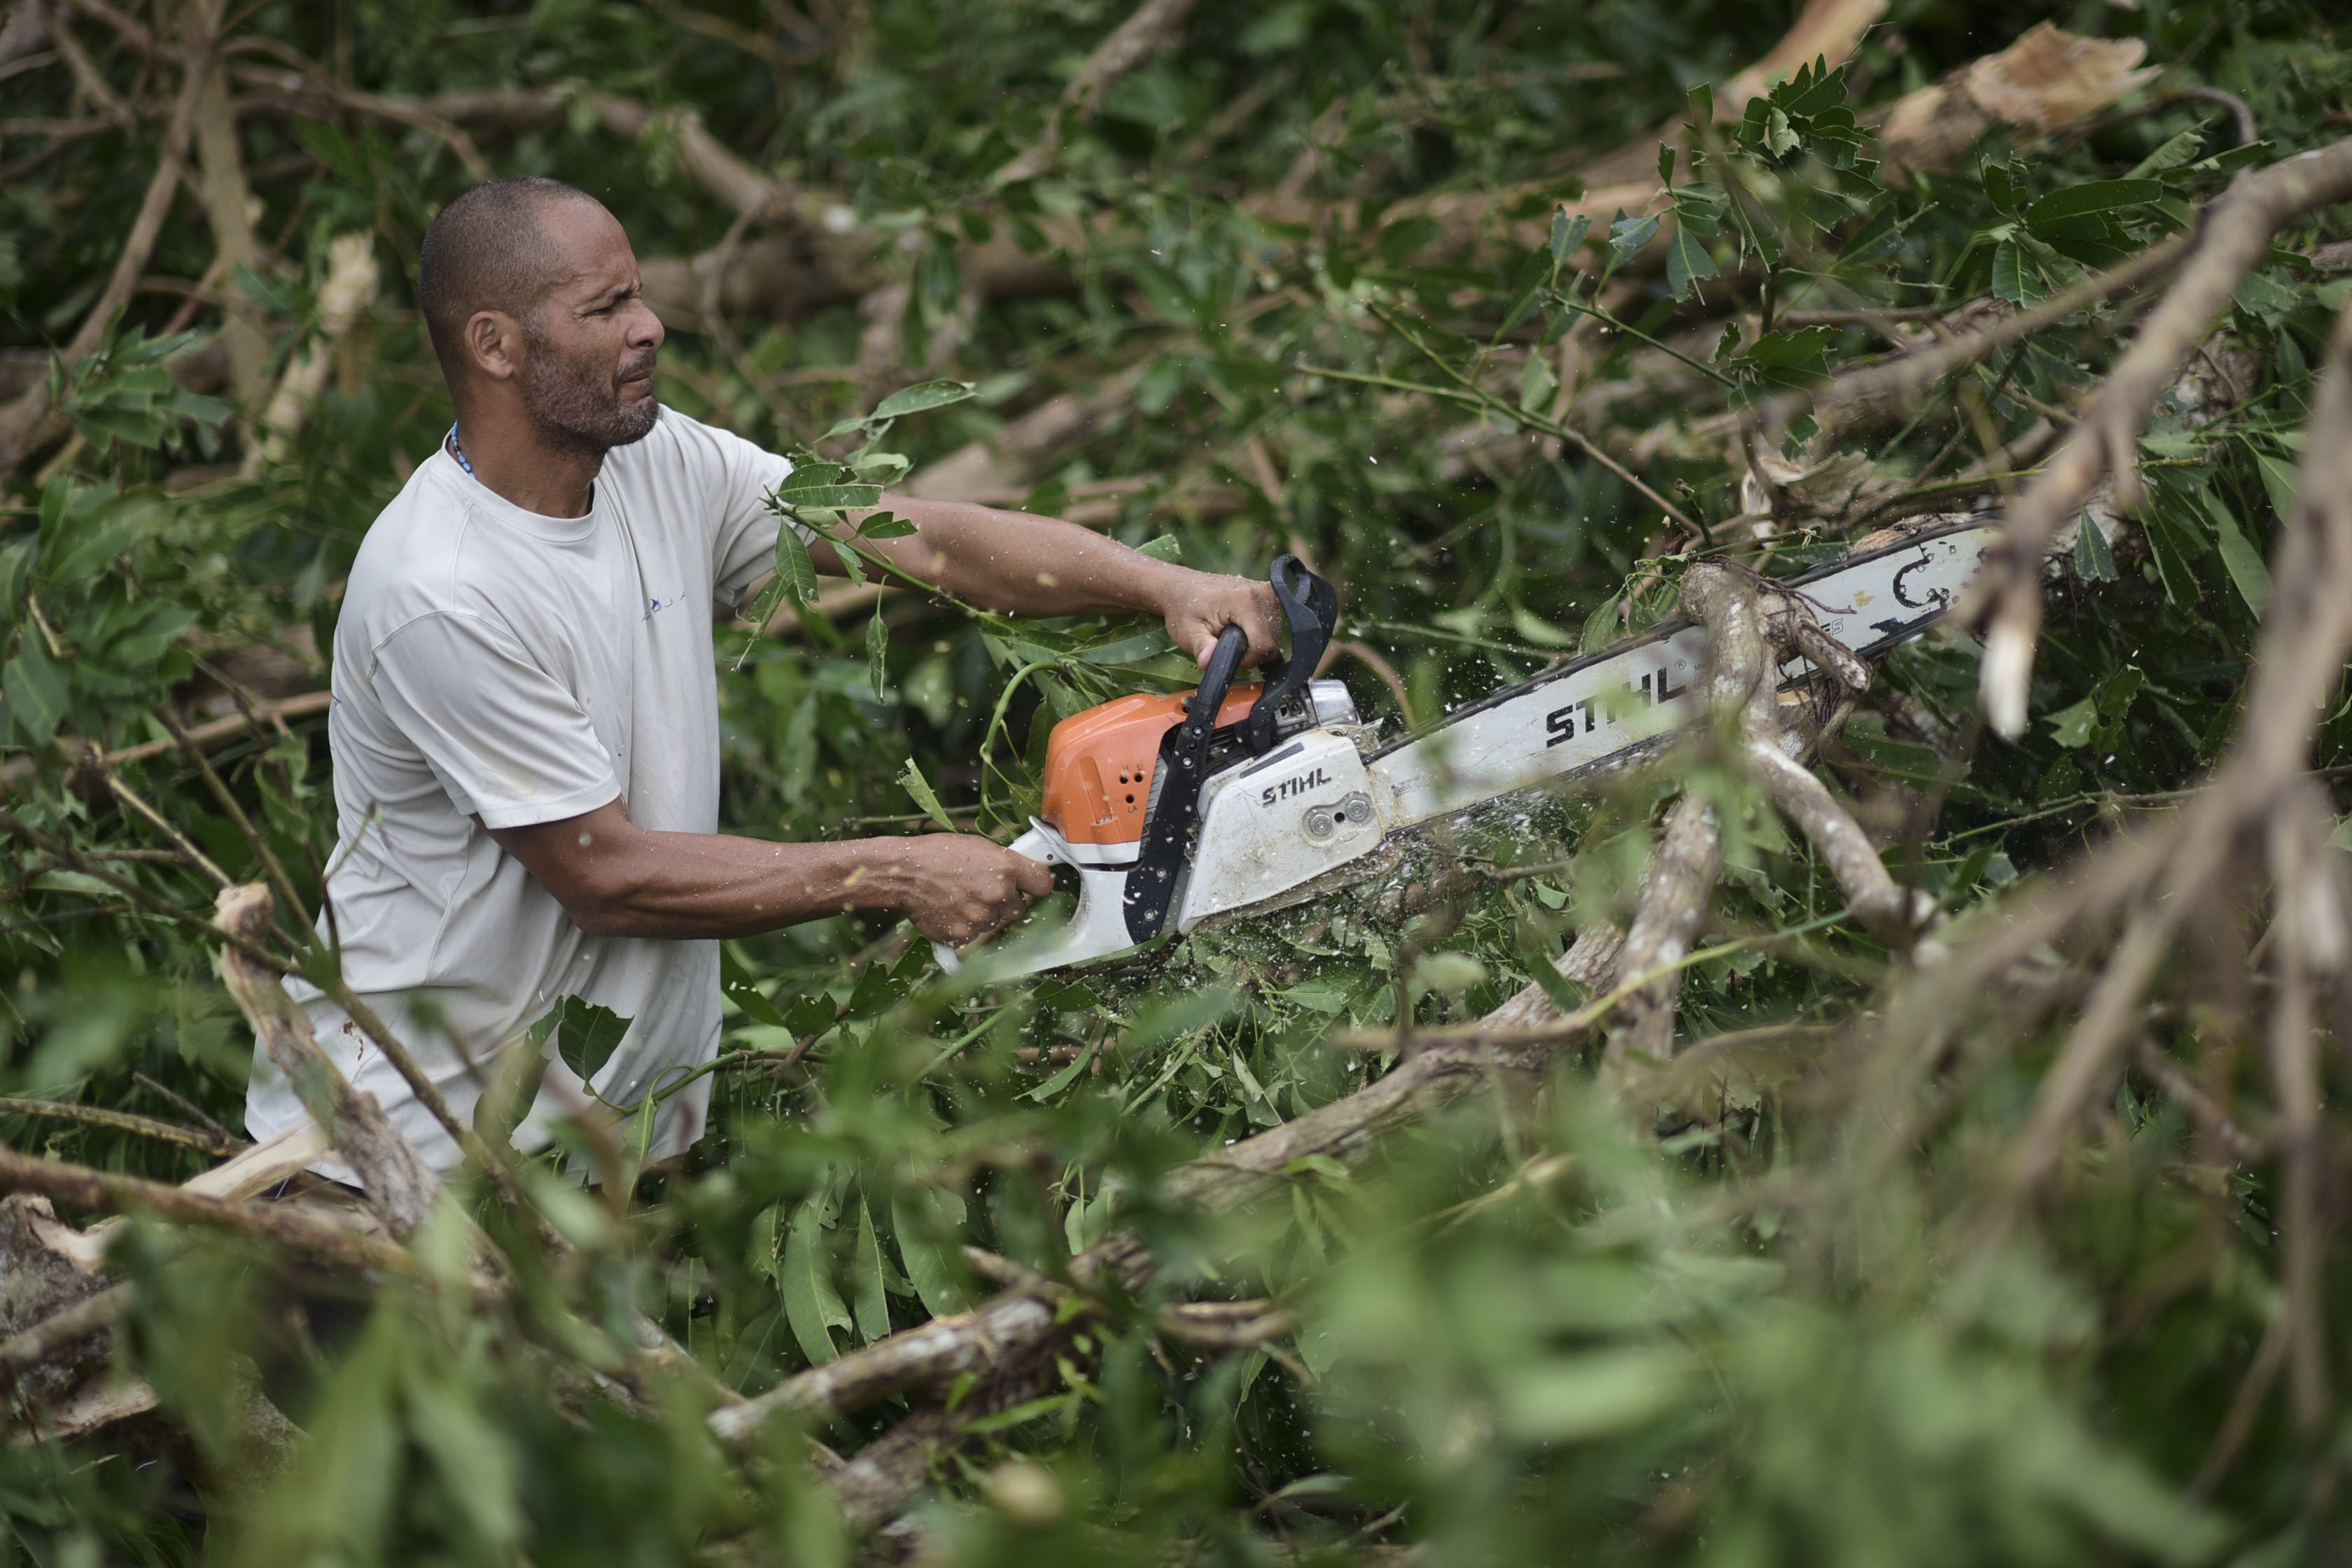 A municipal government worker clears a road after the passing of Hurricane Maria, in Yabucoa, Puerto Rico, Thursday, September 21, 2017. As of Thursday evening, Maria was moving off the northern coast of the Dominican Republic with winds of 120 mph (195 kph). The storm was expected to approach the Turks and Caicos Islands and the Bahamas late Thursday and early Friday. (AP Photo/Carlos Giusti)